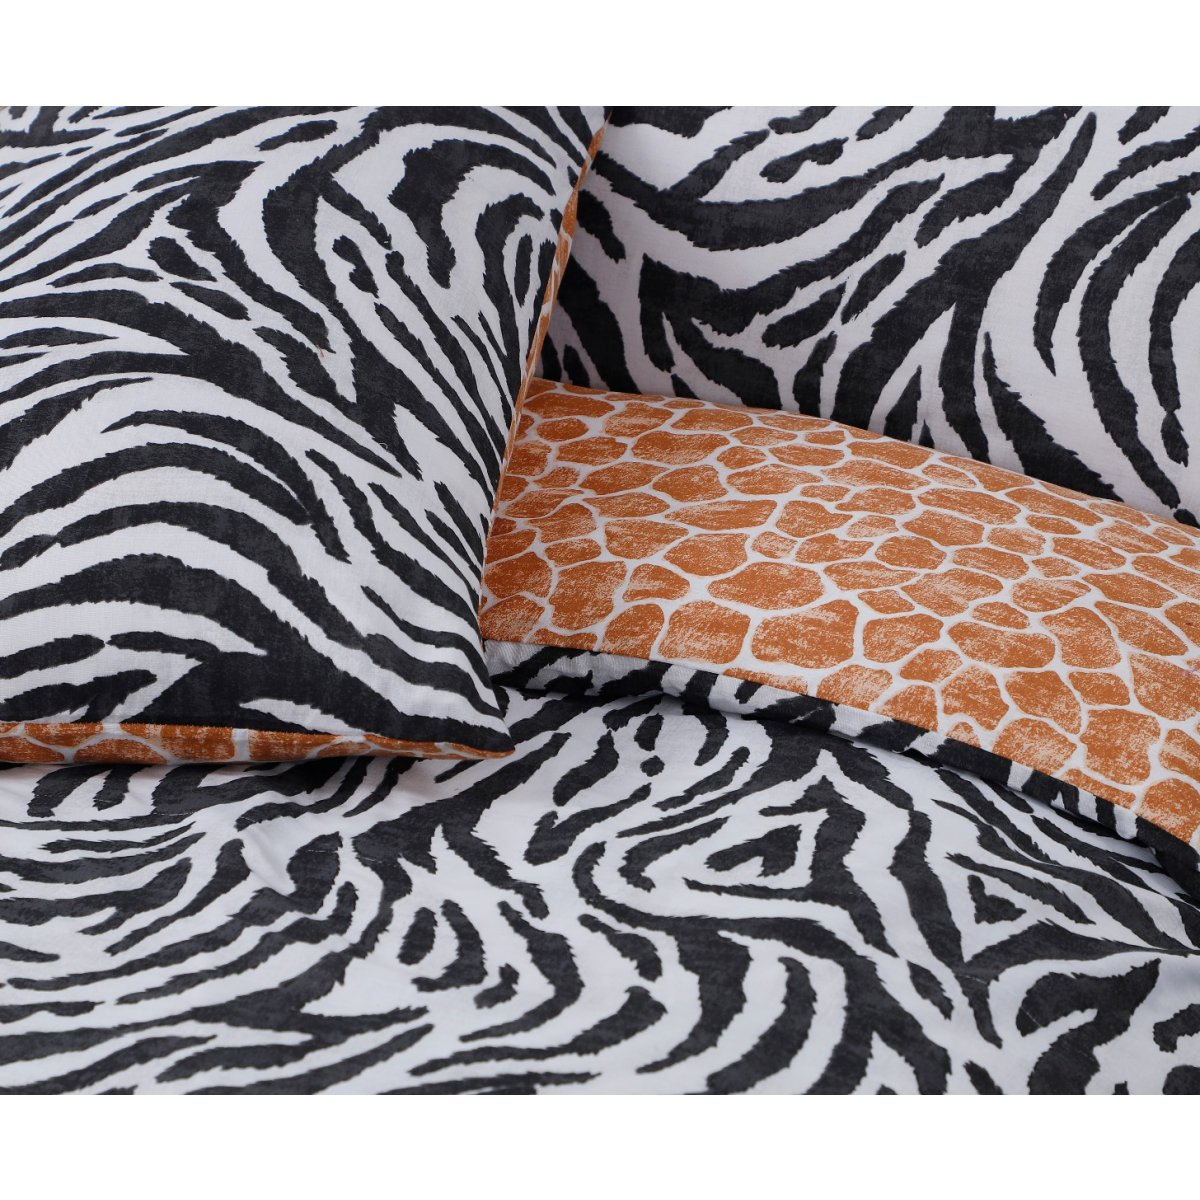 Zebra Print Monochrome Bedding - Reversible Duvet Cover and Pillowcase Set